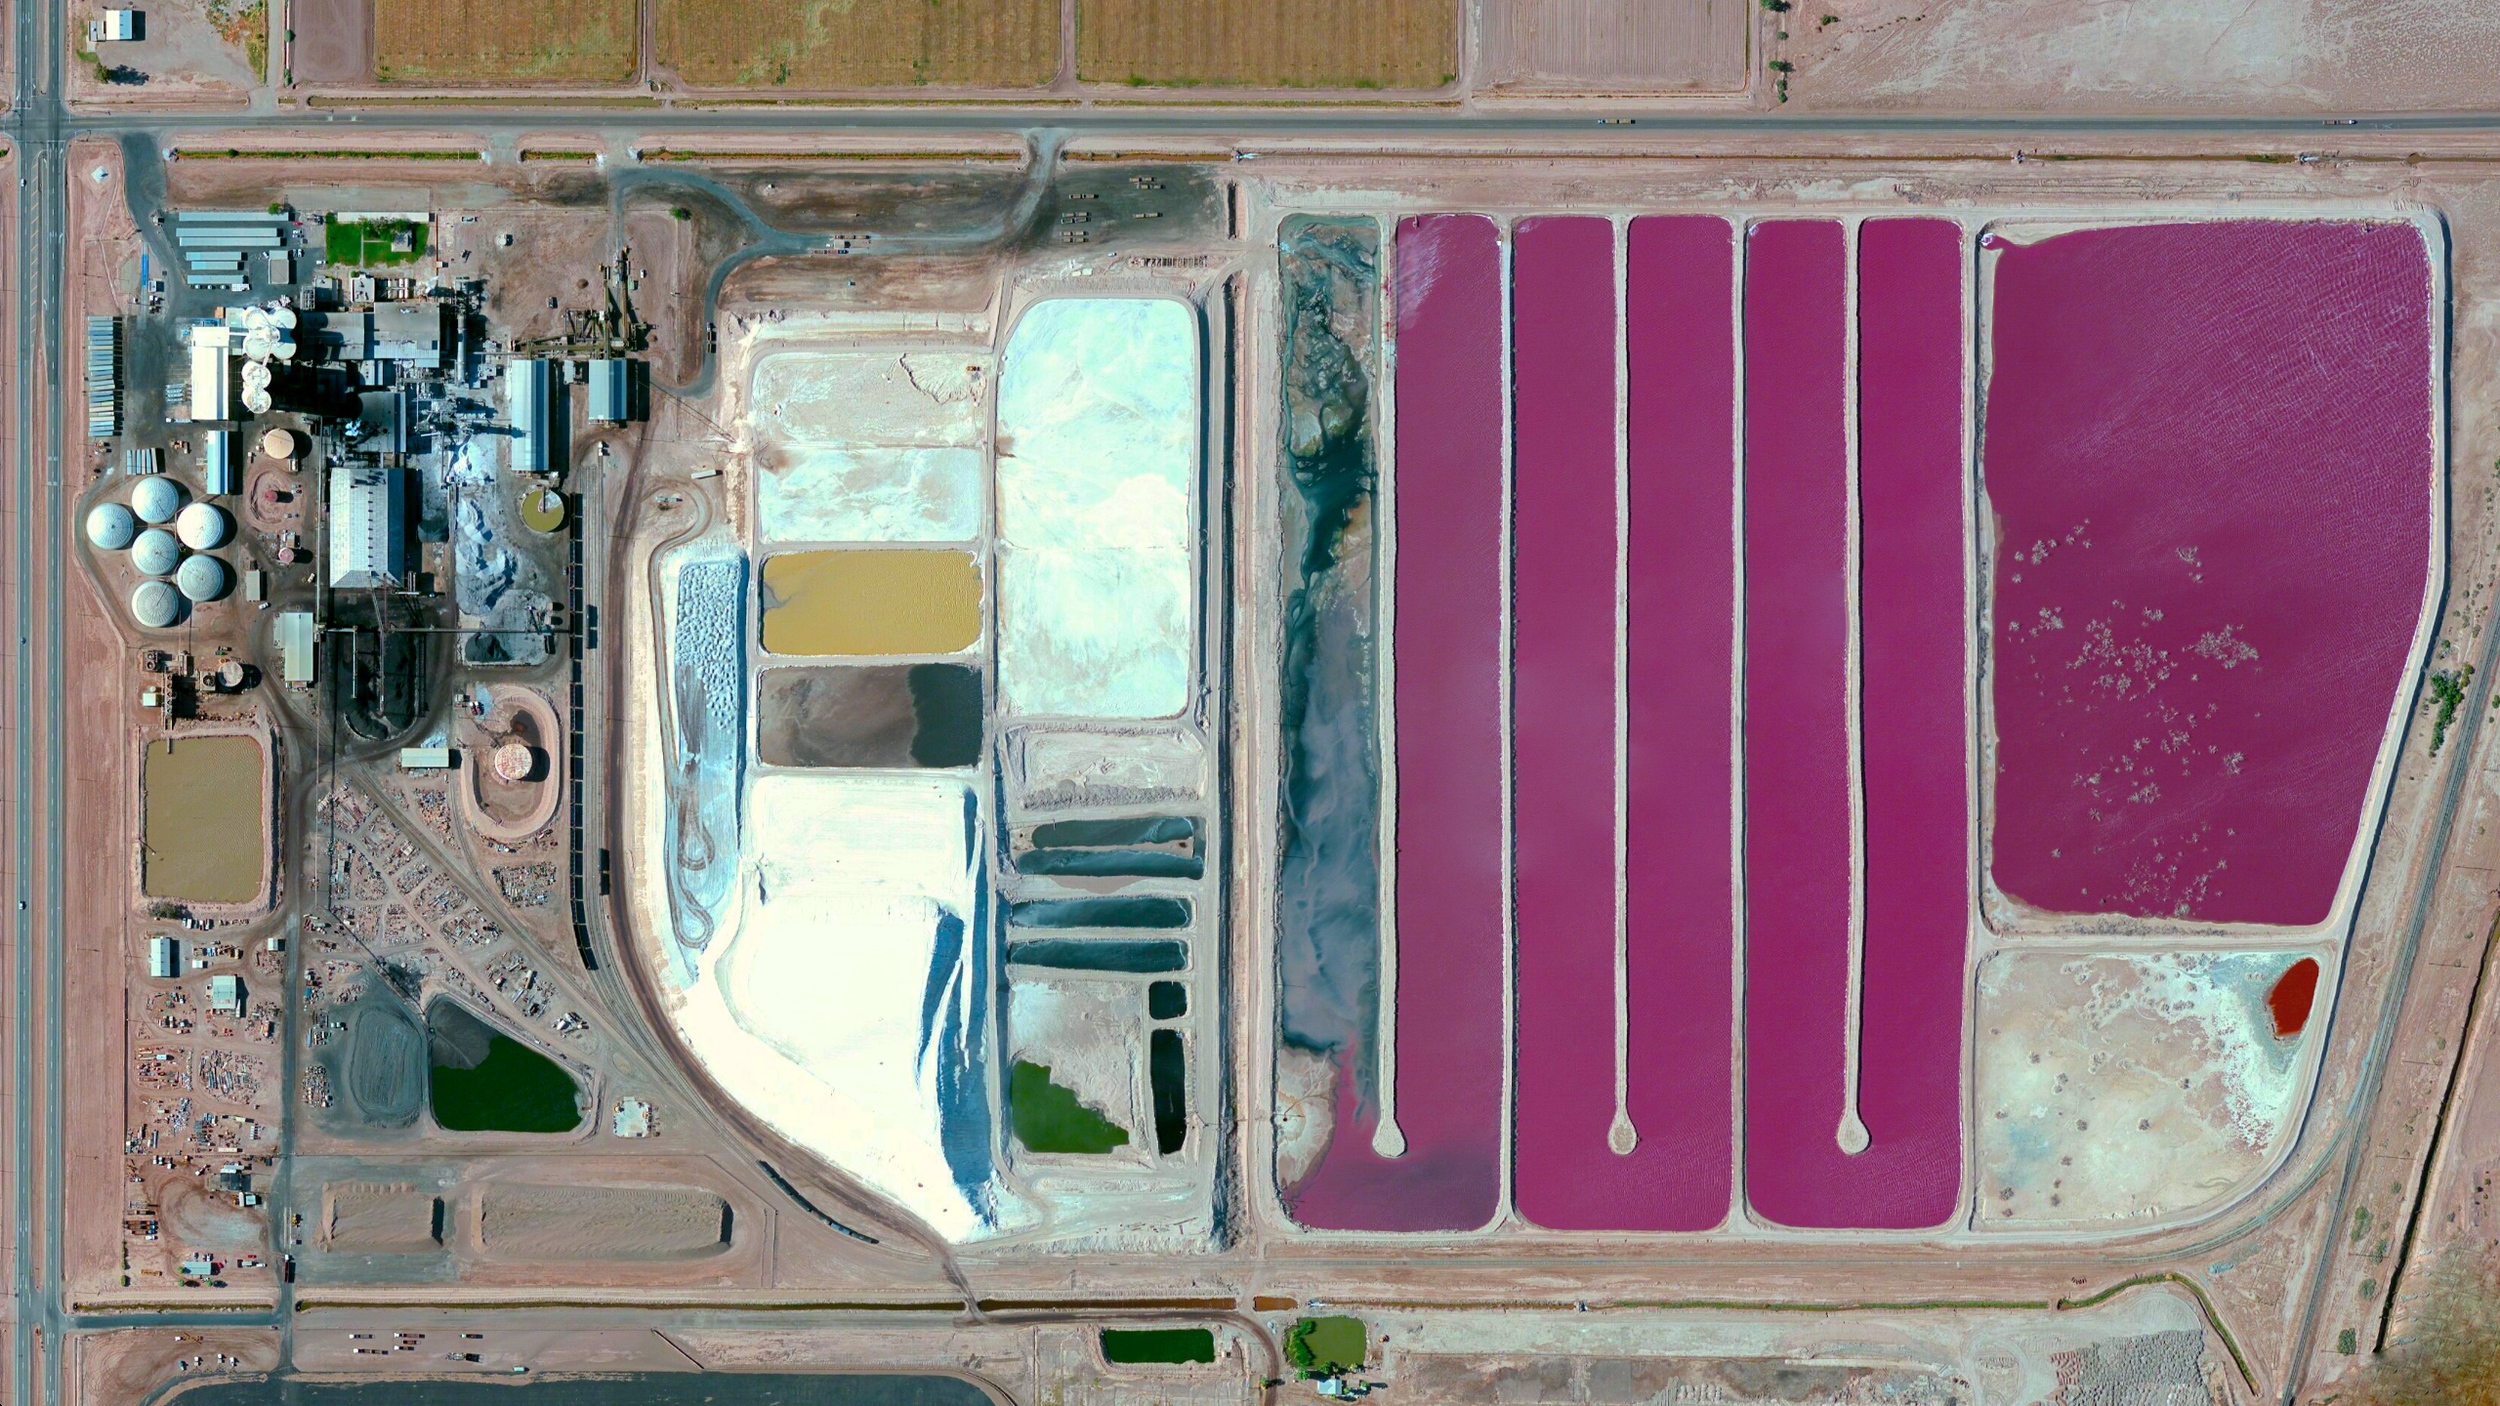 5/24/2015  Spreckles Beet Sugar Factory  Brawley, California, USA  32.905407, -115.565693      Another shot from the archive: The Spreckles Beet Sugar Factory is located in Brawley, California, USA. After machines extract sugar from sugarbeet roots, the leftover (and colorful) beet pulp is dried on a massive paved area next to the factory. The pulp is then used a major ingredient in dairy feed.